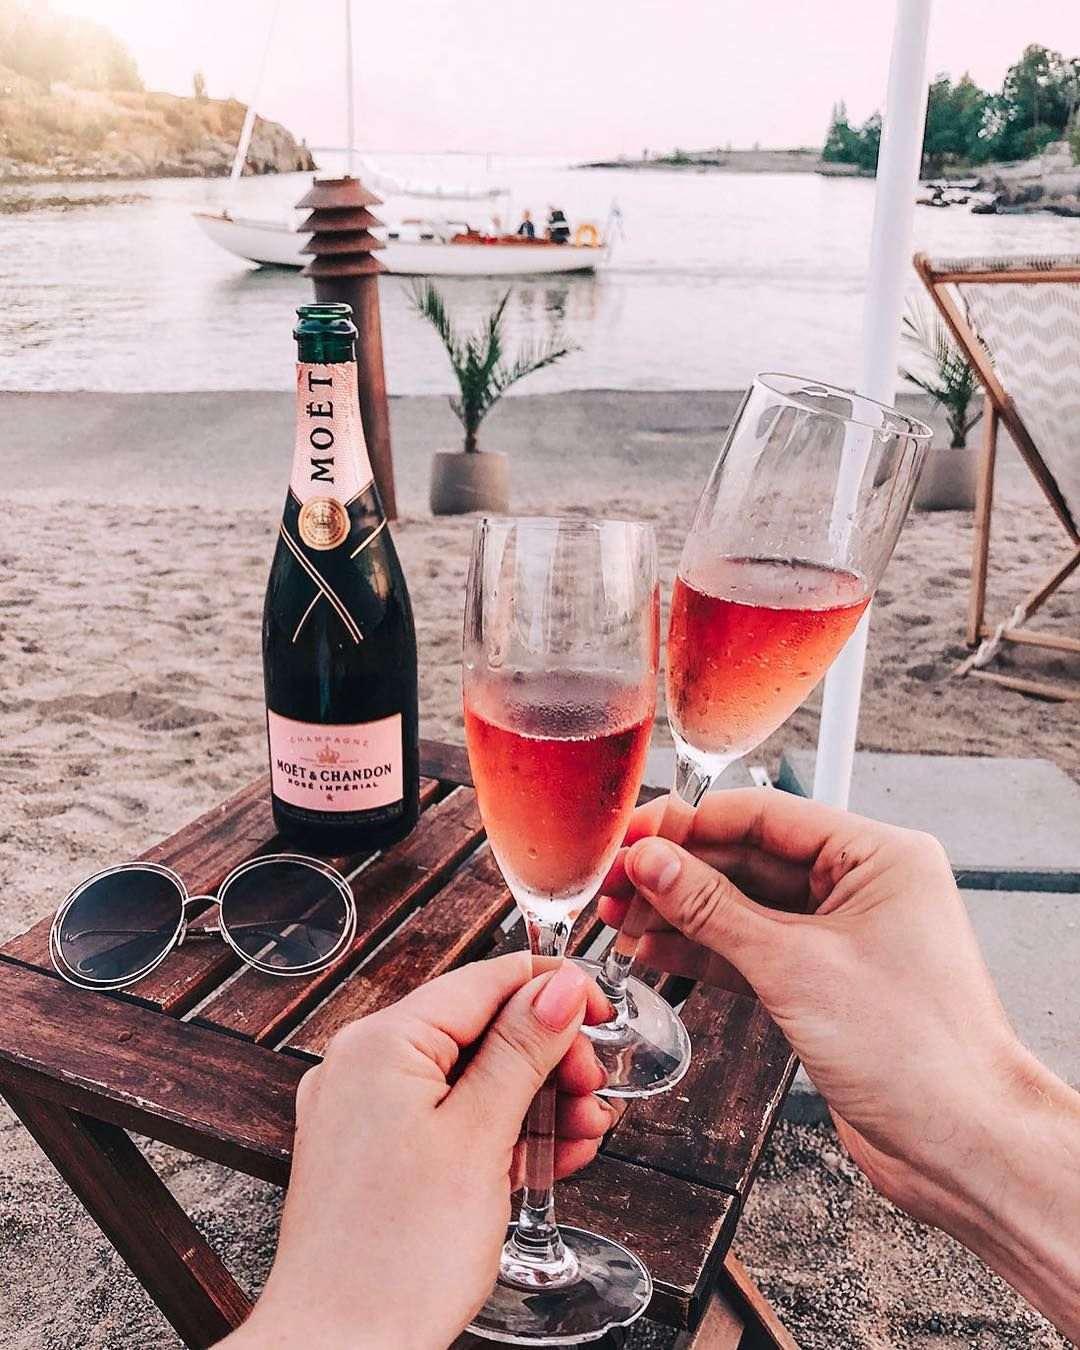 Pin By Viktoria On Cheers To Traveling Cheers To Life Wine Hampers Gifts For Wine Lovers Red Wine Gifts